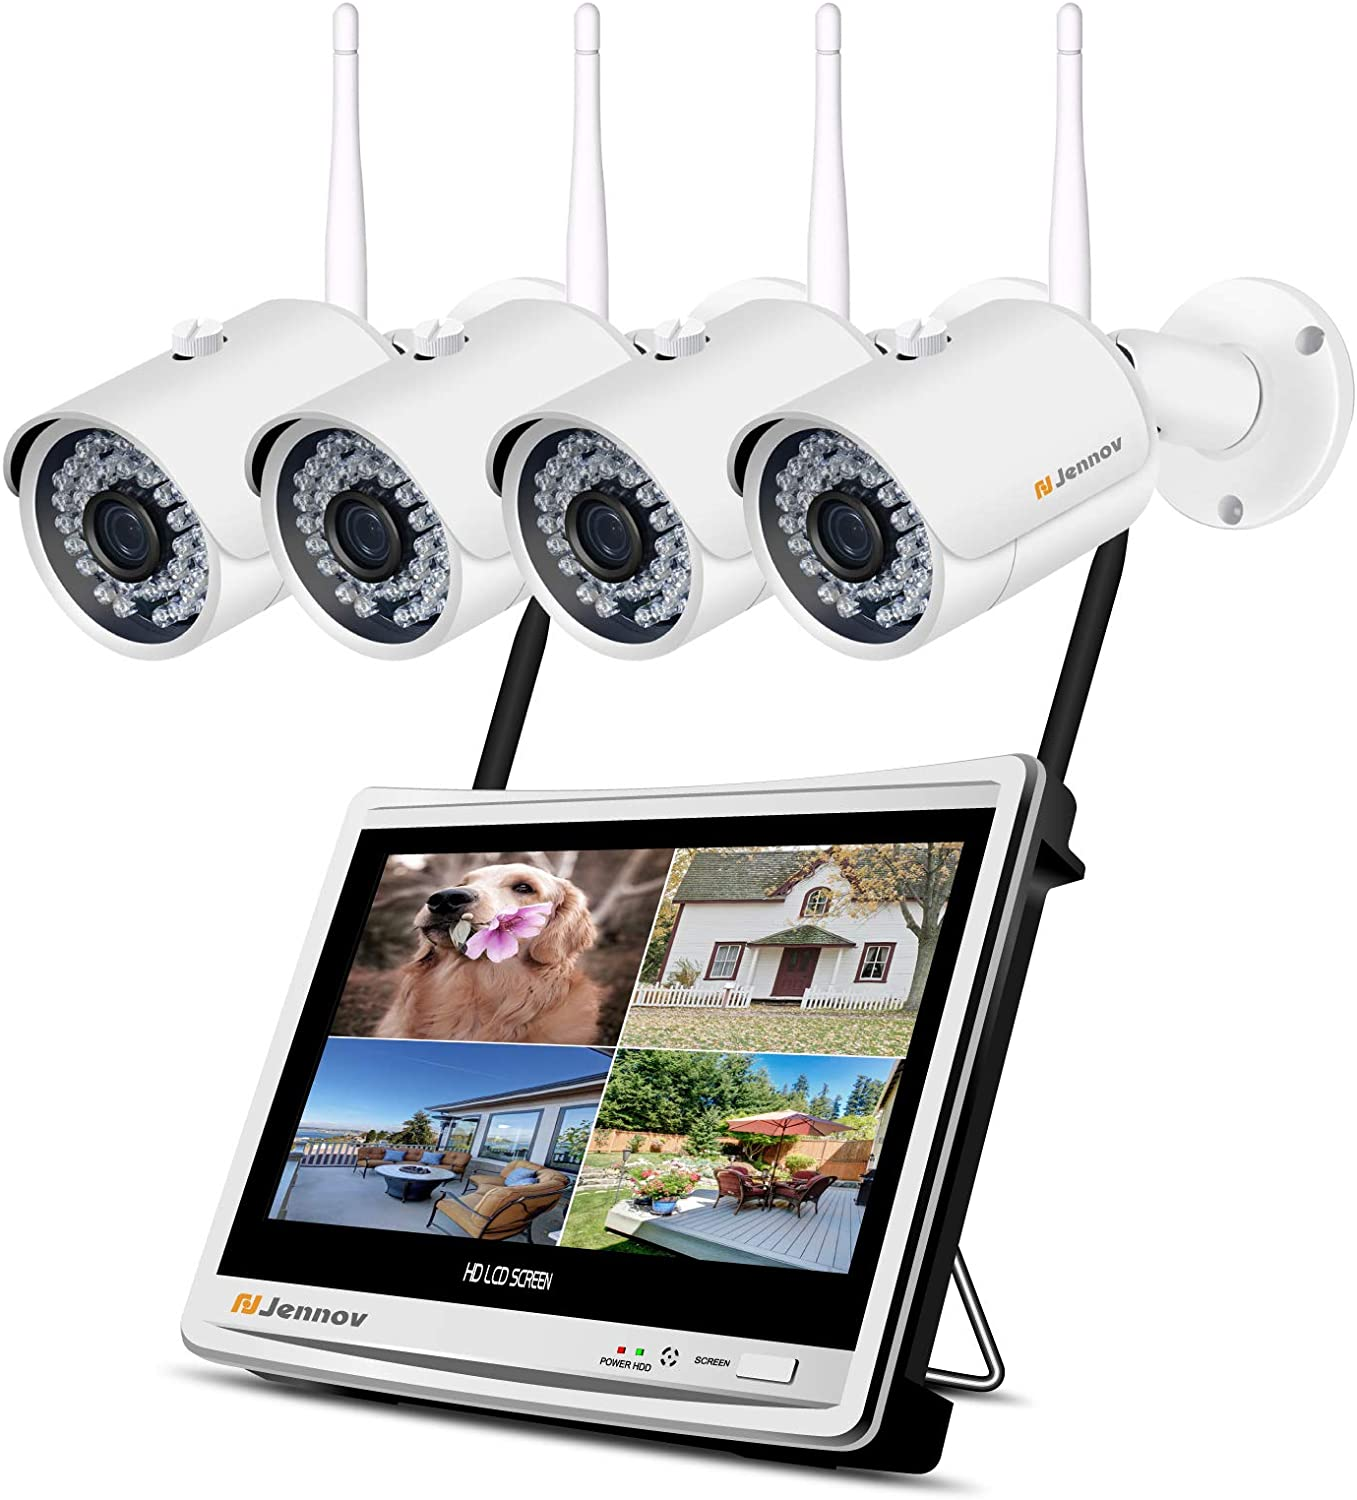 Jennov 1080P Wireless Security IP Camera System Outdoor 4 Channels Audio /& Video Surveillance CCTV Cameras Black NVR Kit with Night Vision Motion Detection Pre-Install 1TB HDD MAX Support 4TB